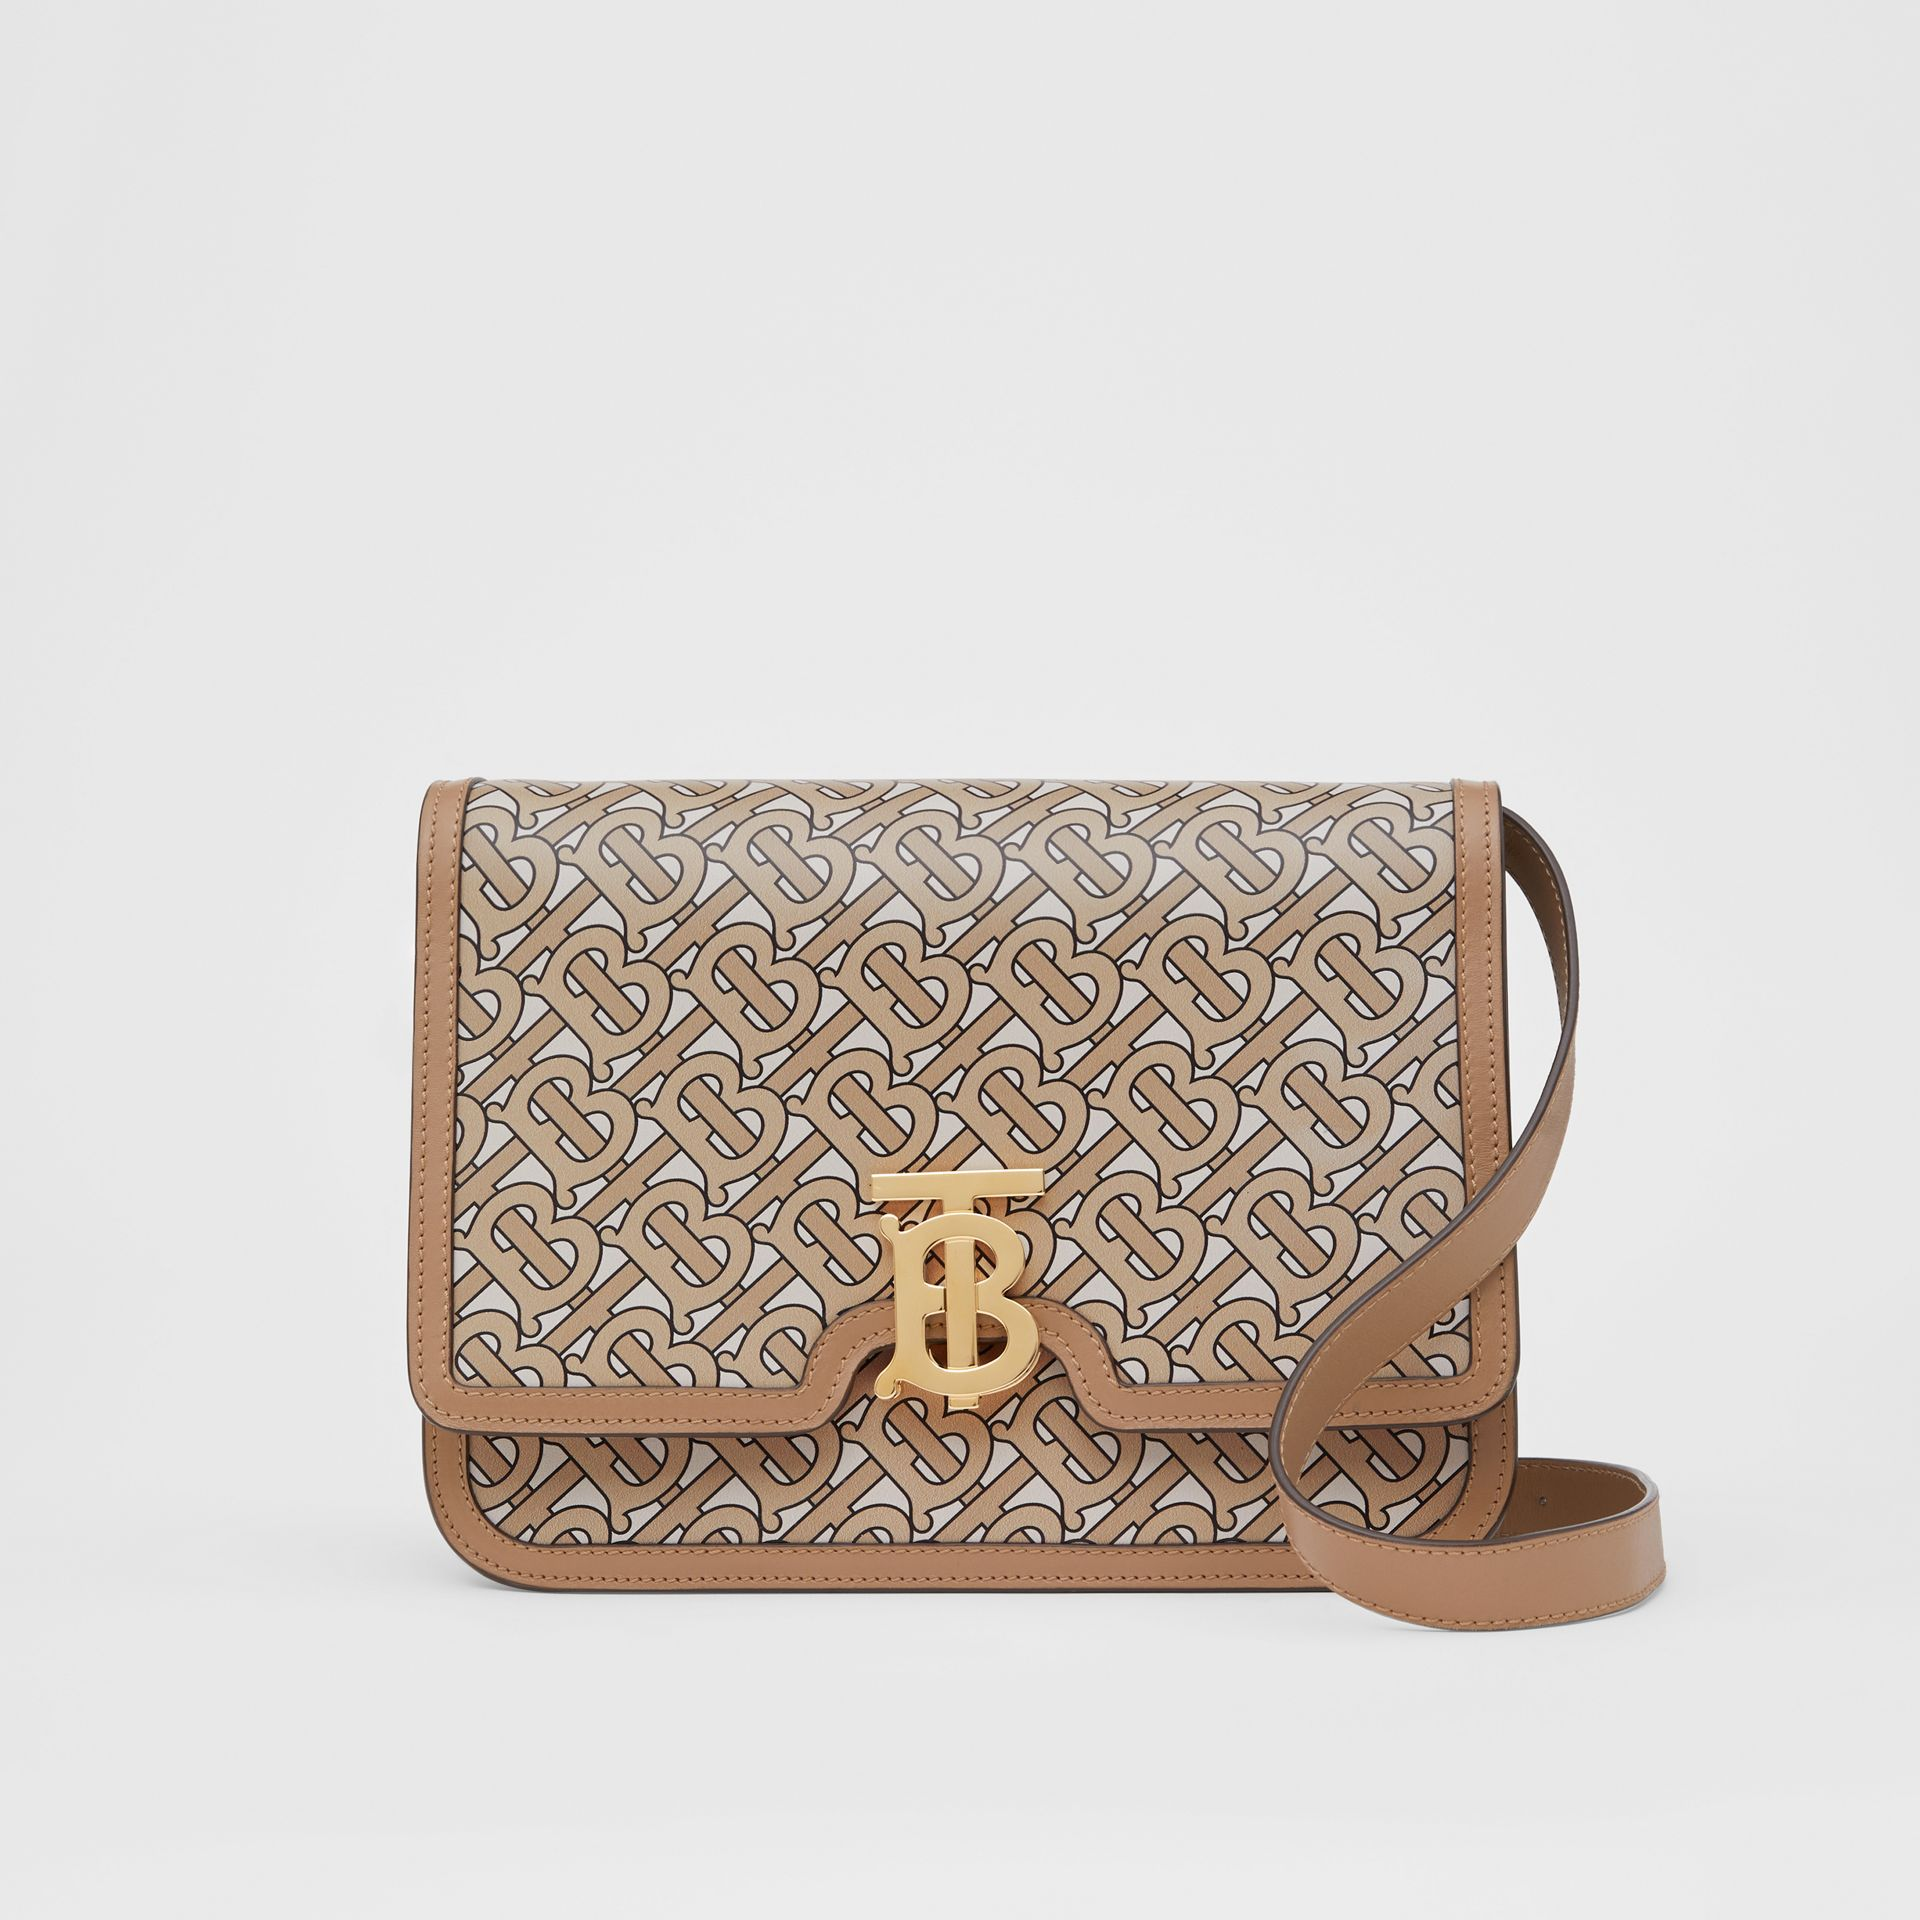 Medium Monogram Print Leather TB Bag in Beige - Women | Burberry Australia - gallery image 0